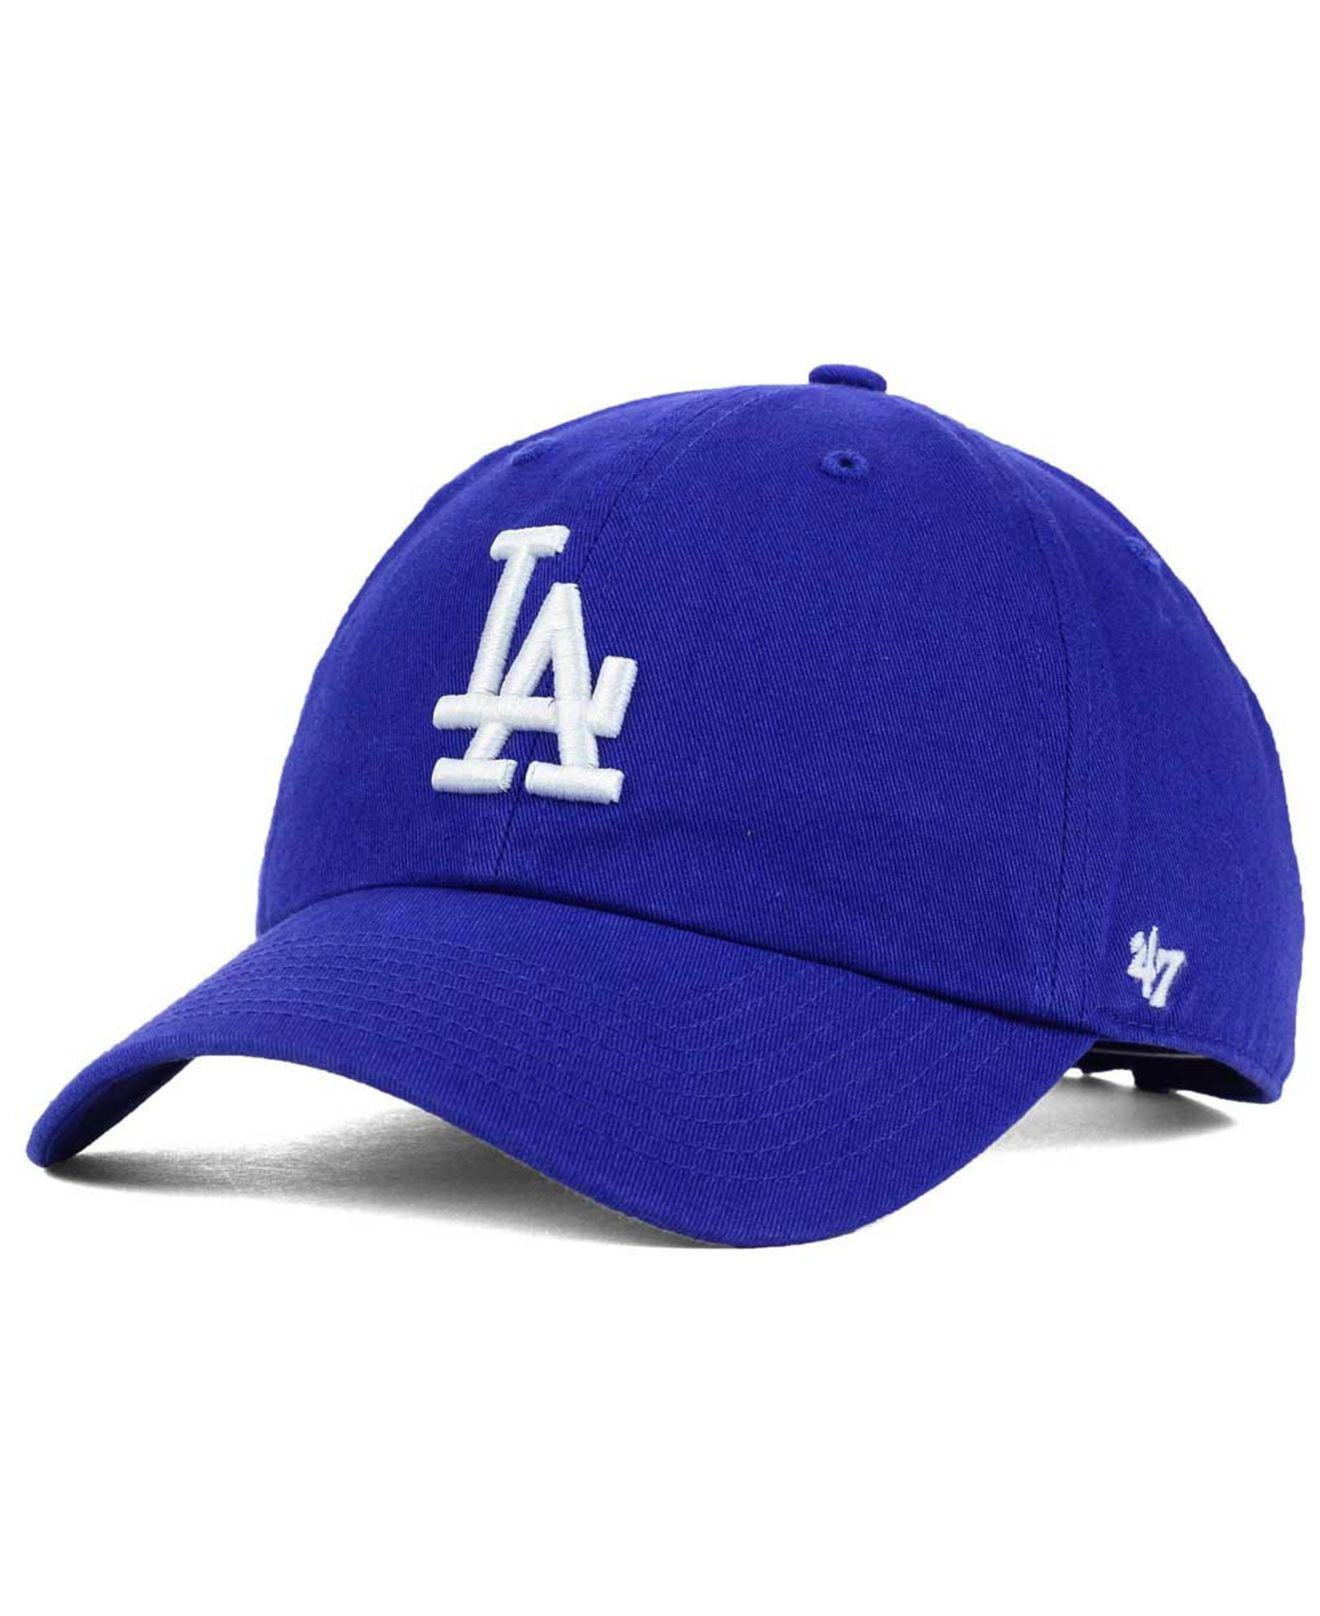 hot sales cac65 3426f 47 Brand. Men s Blue Los Angeles Dodgers On-field Replica Clean Up  Strapback Cap